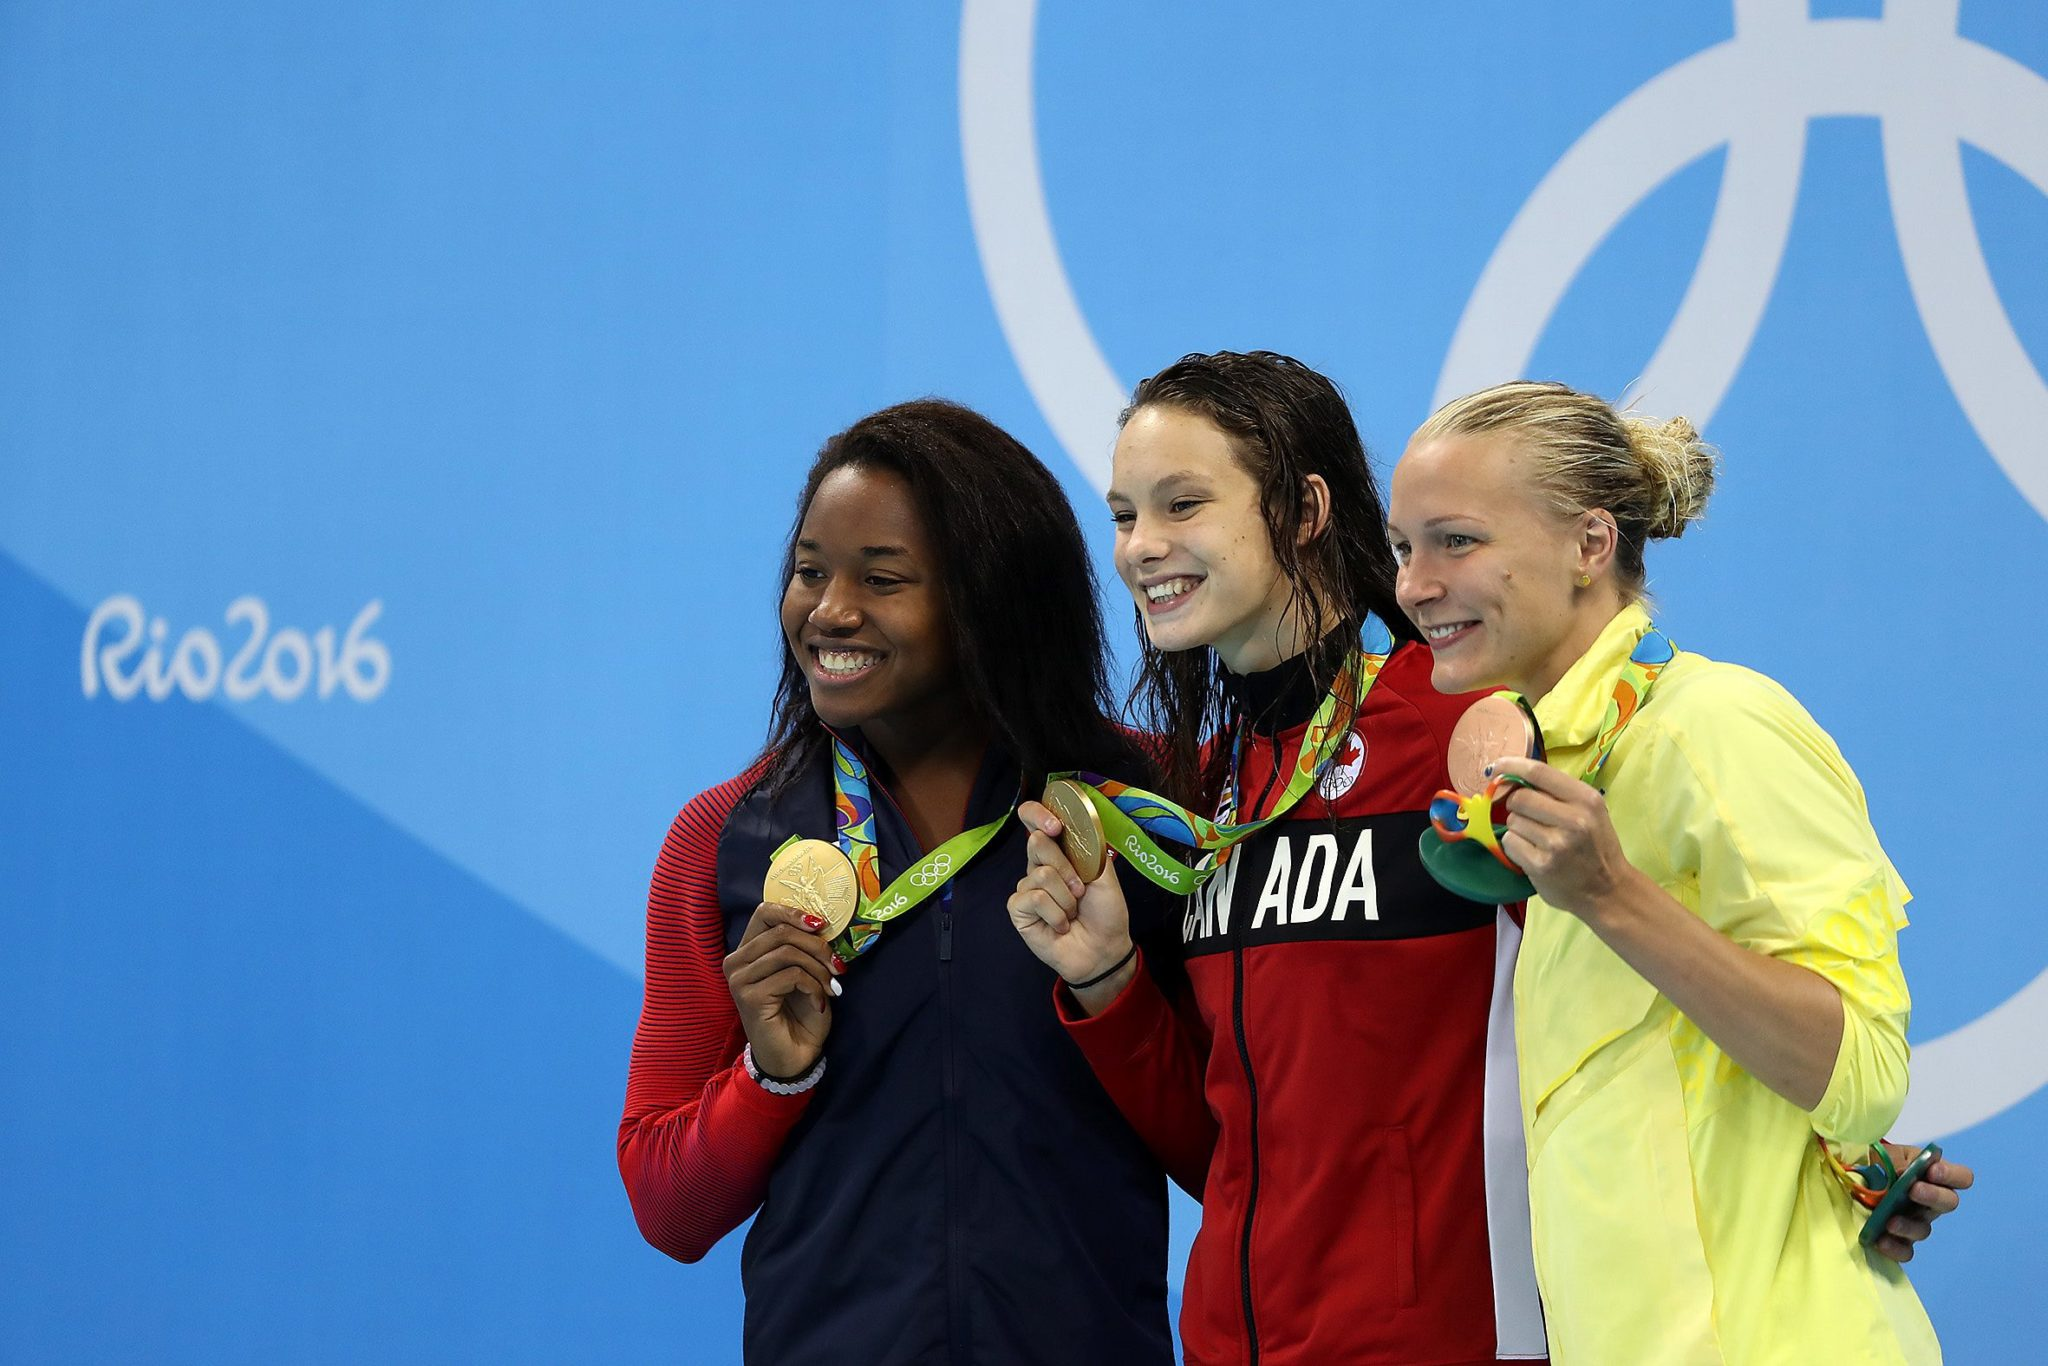 Simone squared: Gymnast Biles and swimmer Manuel both win Olympic gold